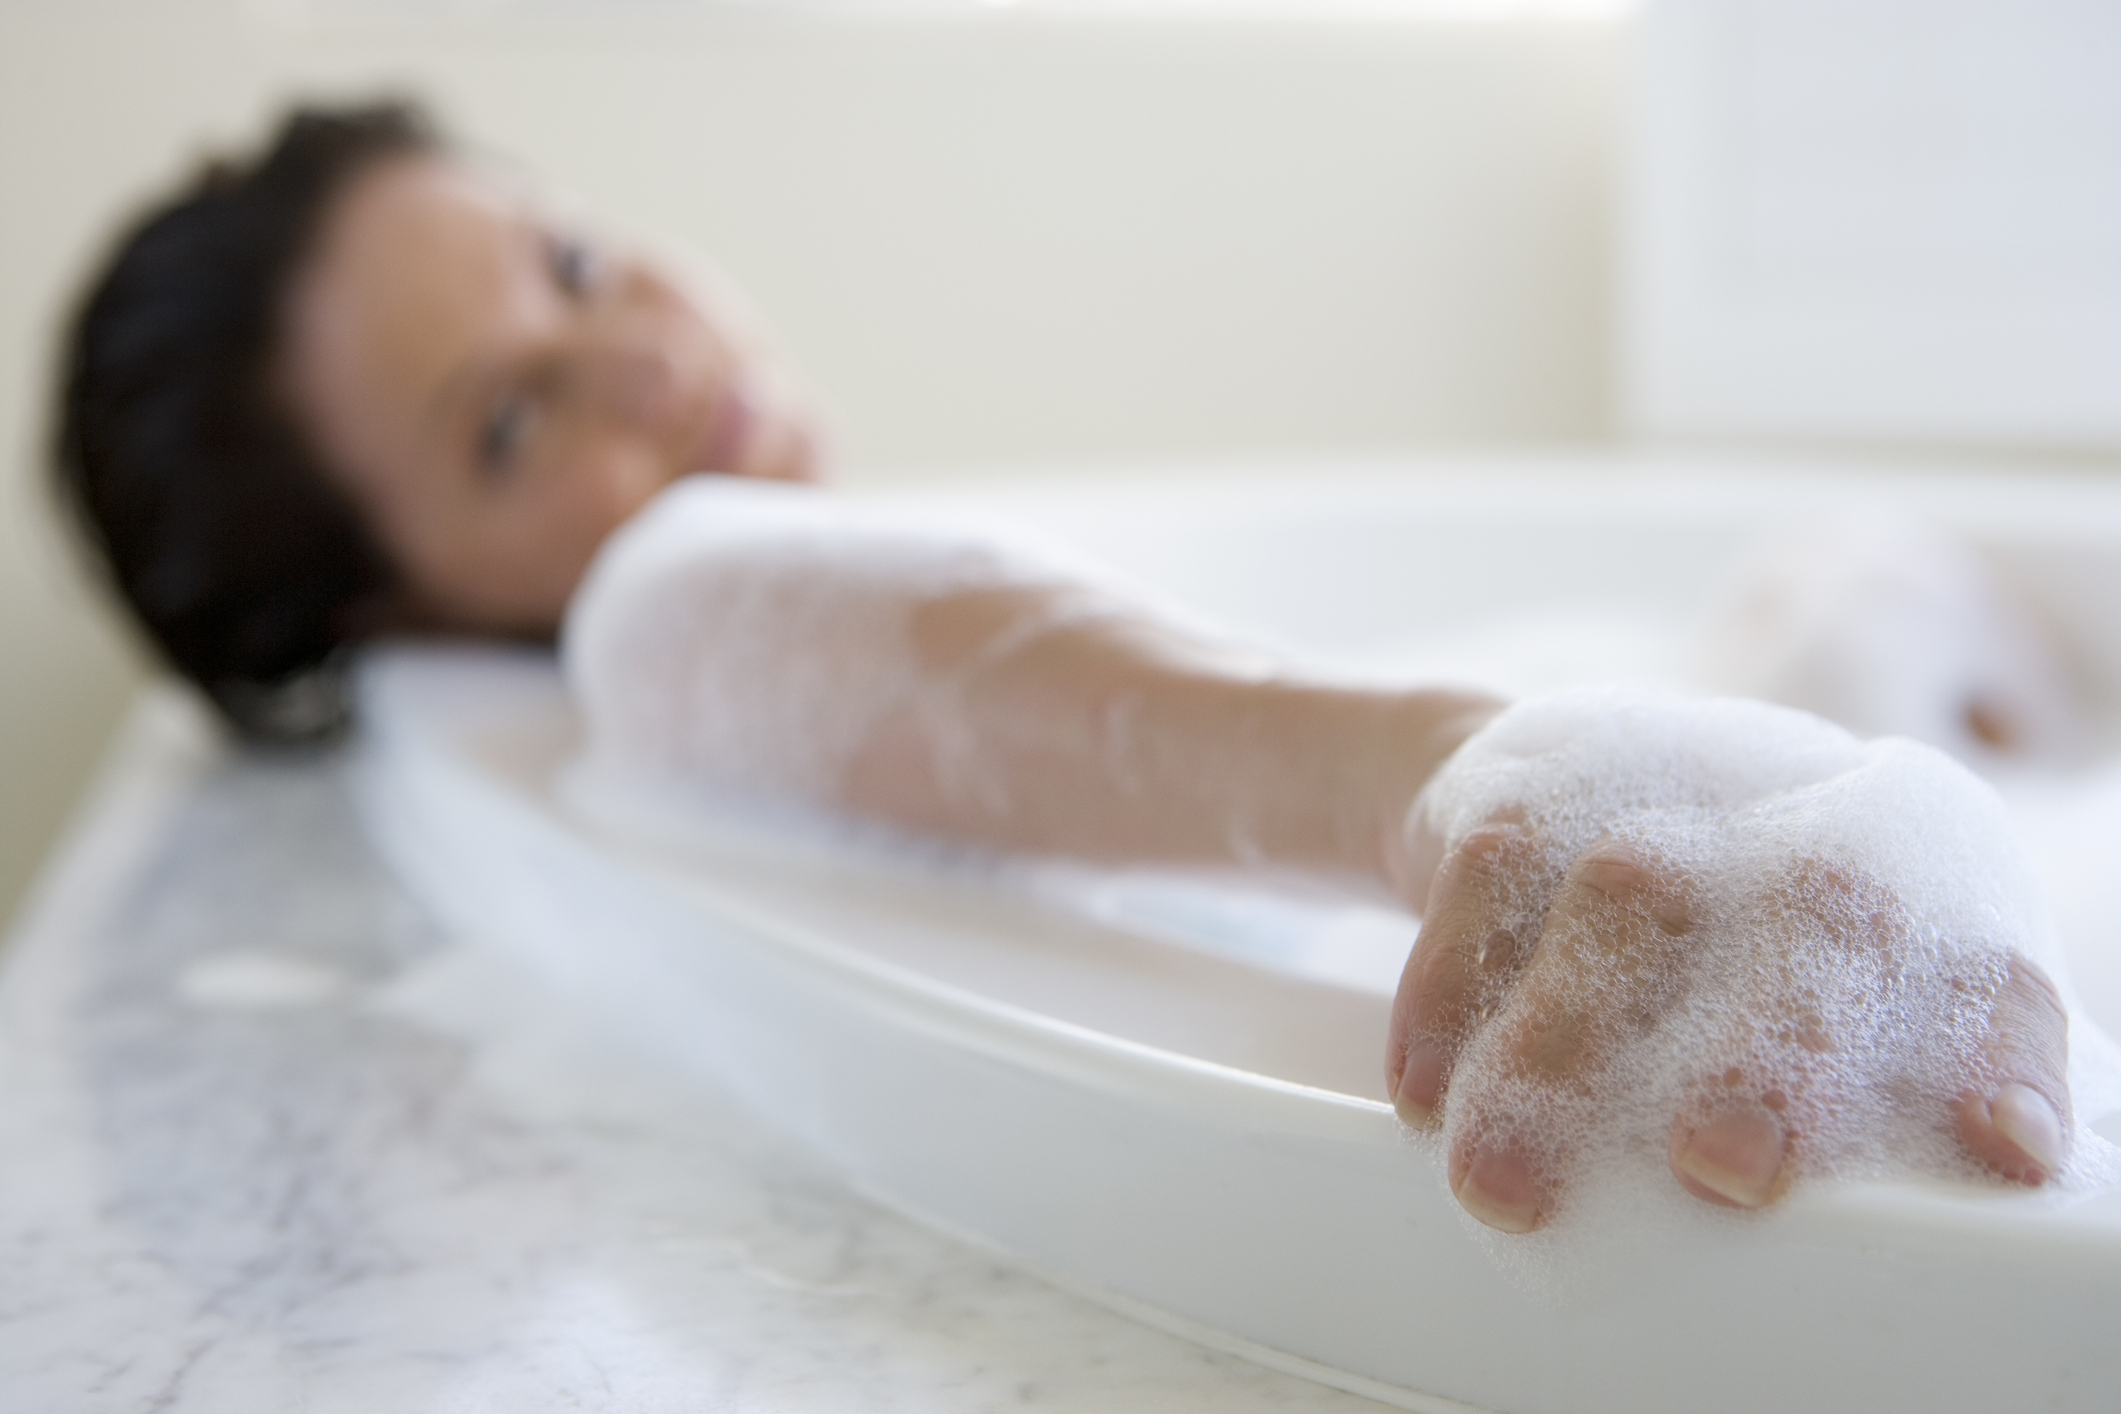 Generic bath - Getty creative